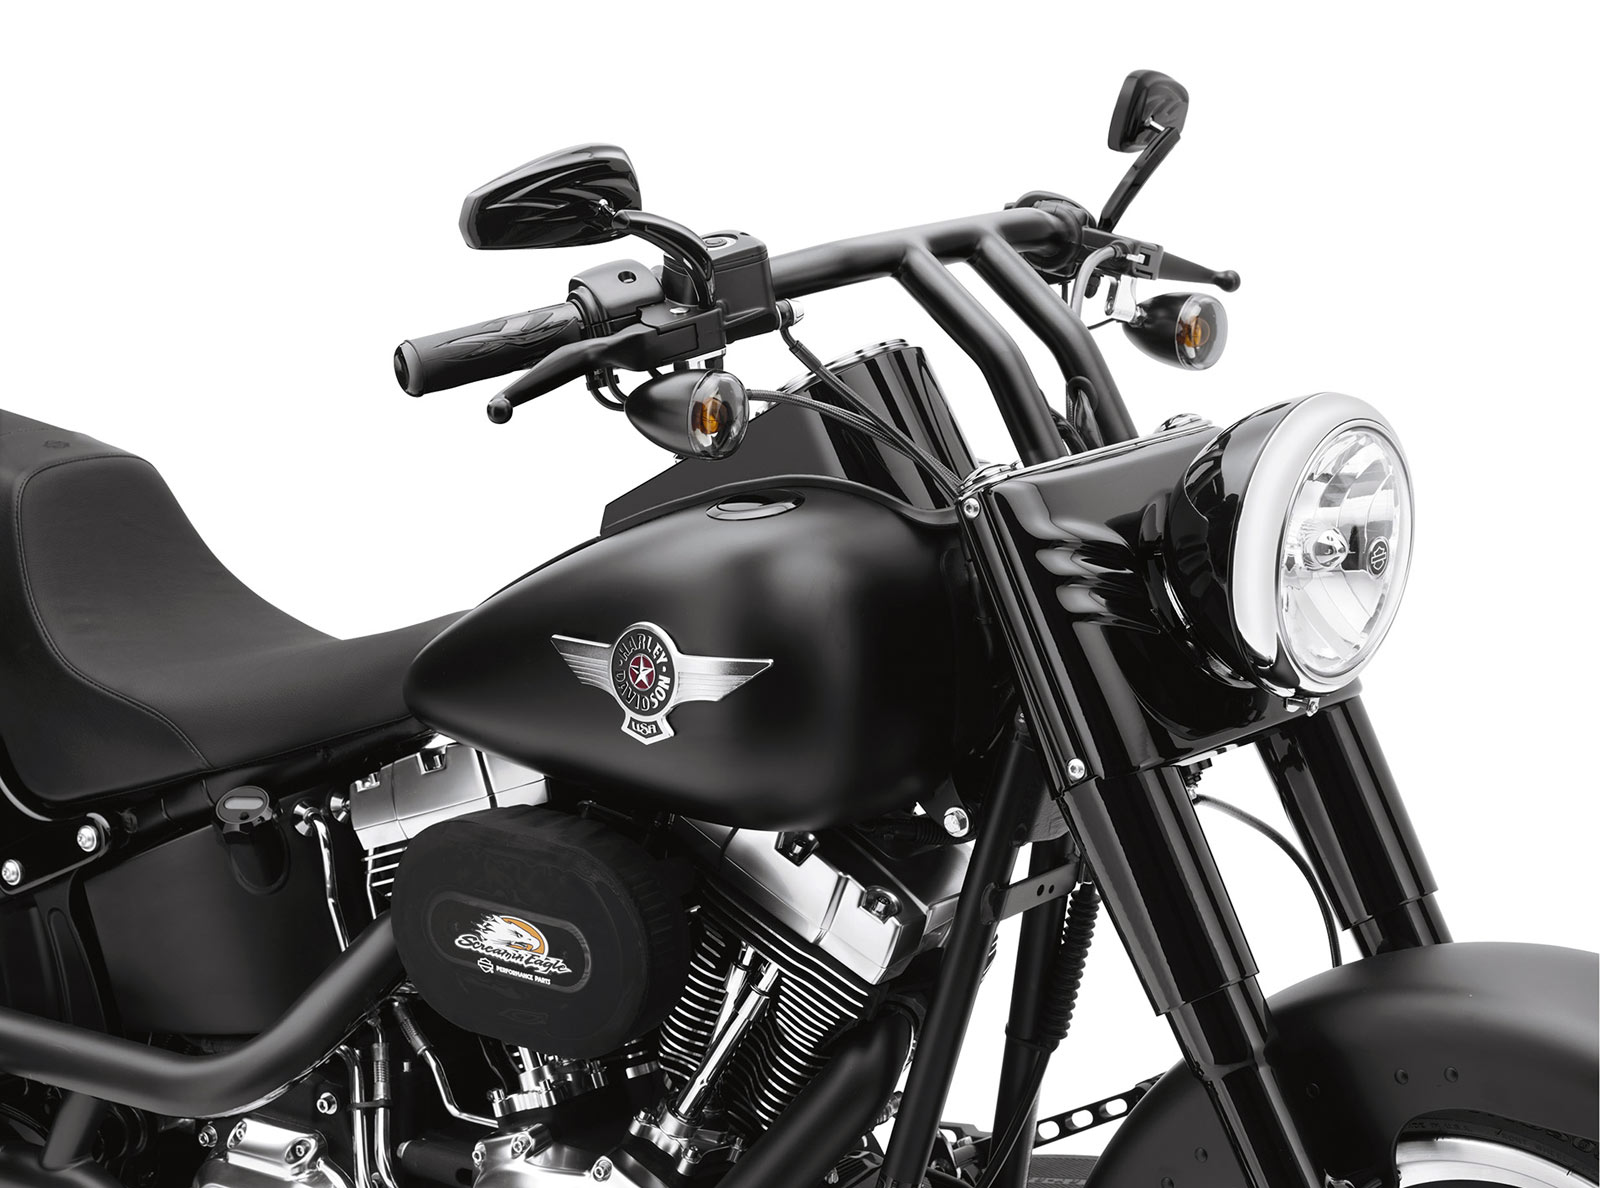 Harley Davidson Drag Bars Black